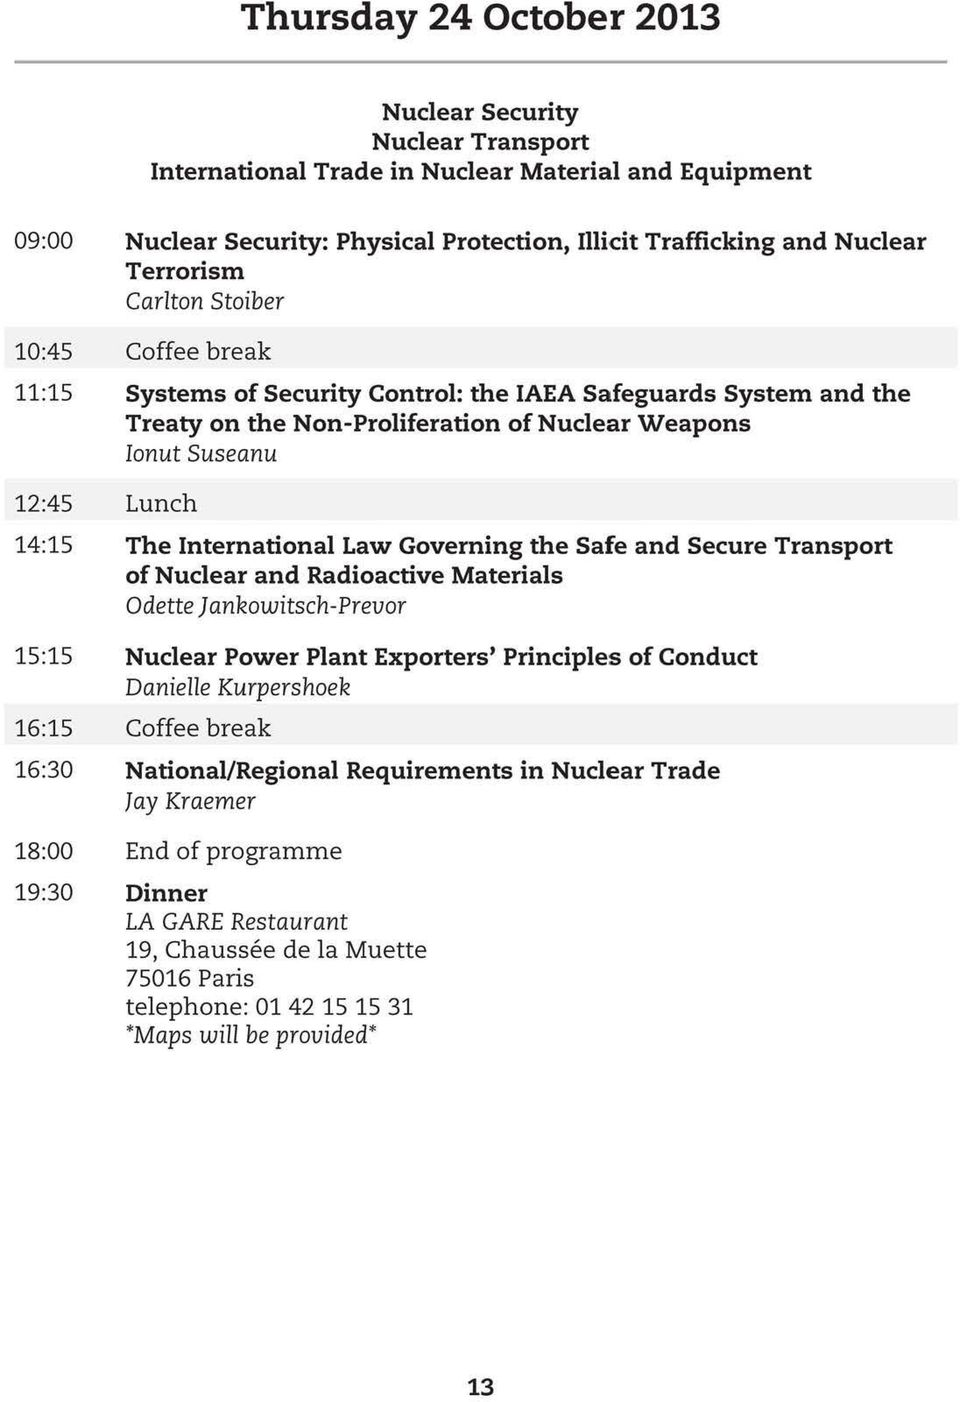 The International Law Governing the Safe and Secure Transport of Nuclear and Radioactive Materials Odette ] ankowitsch-prevor 15:15 Nuclear Power Plant Exporters' Principles of Conduct Danielle